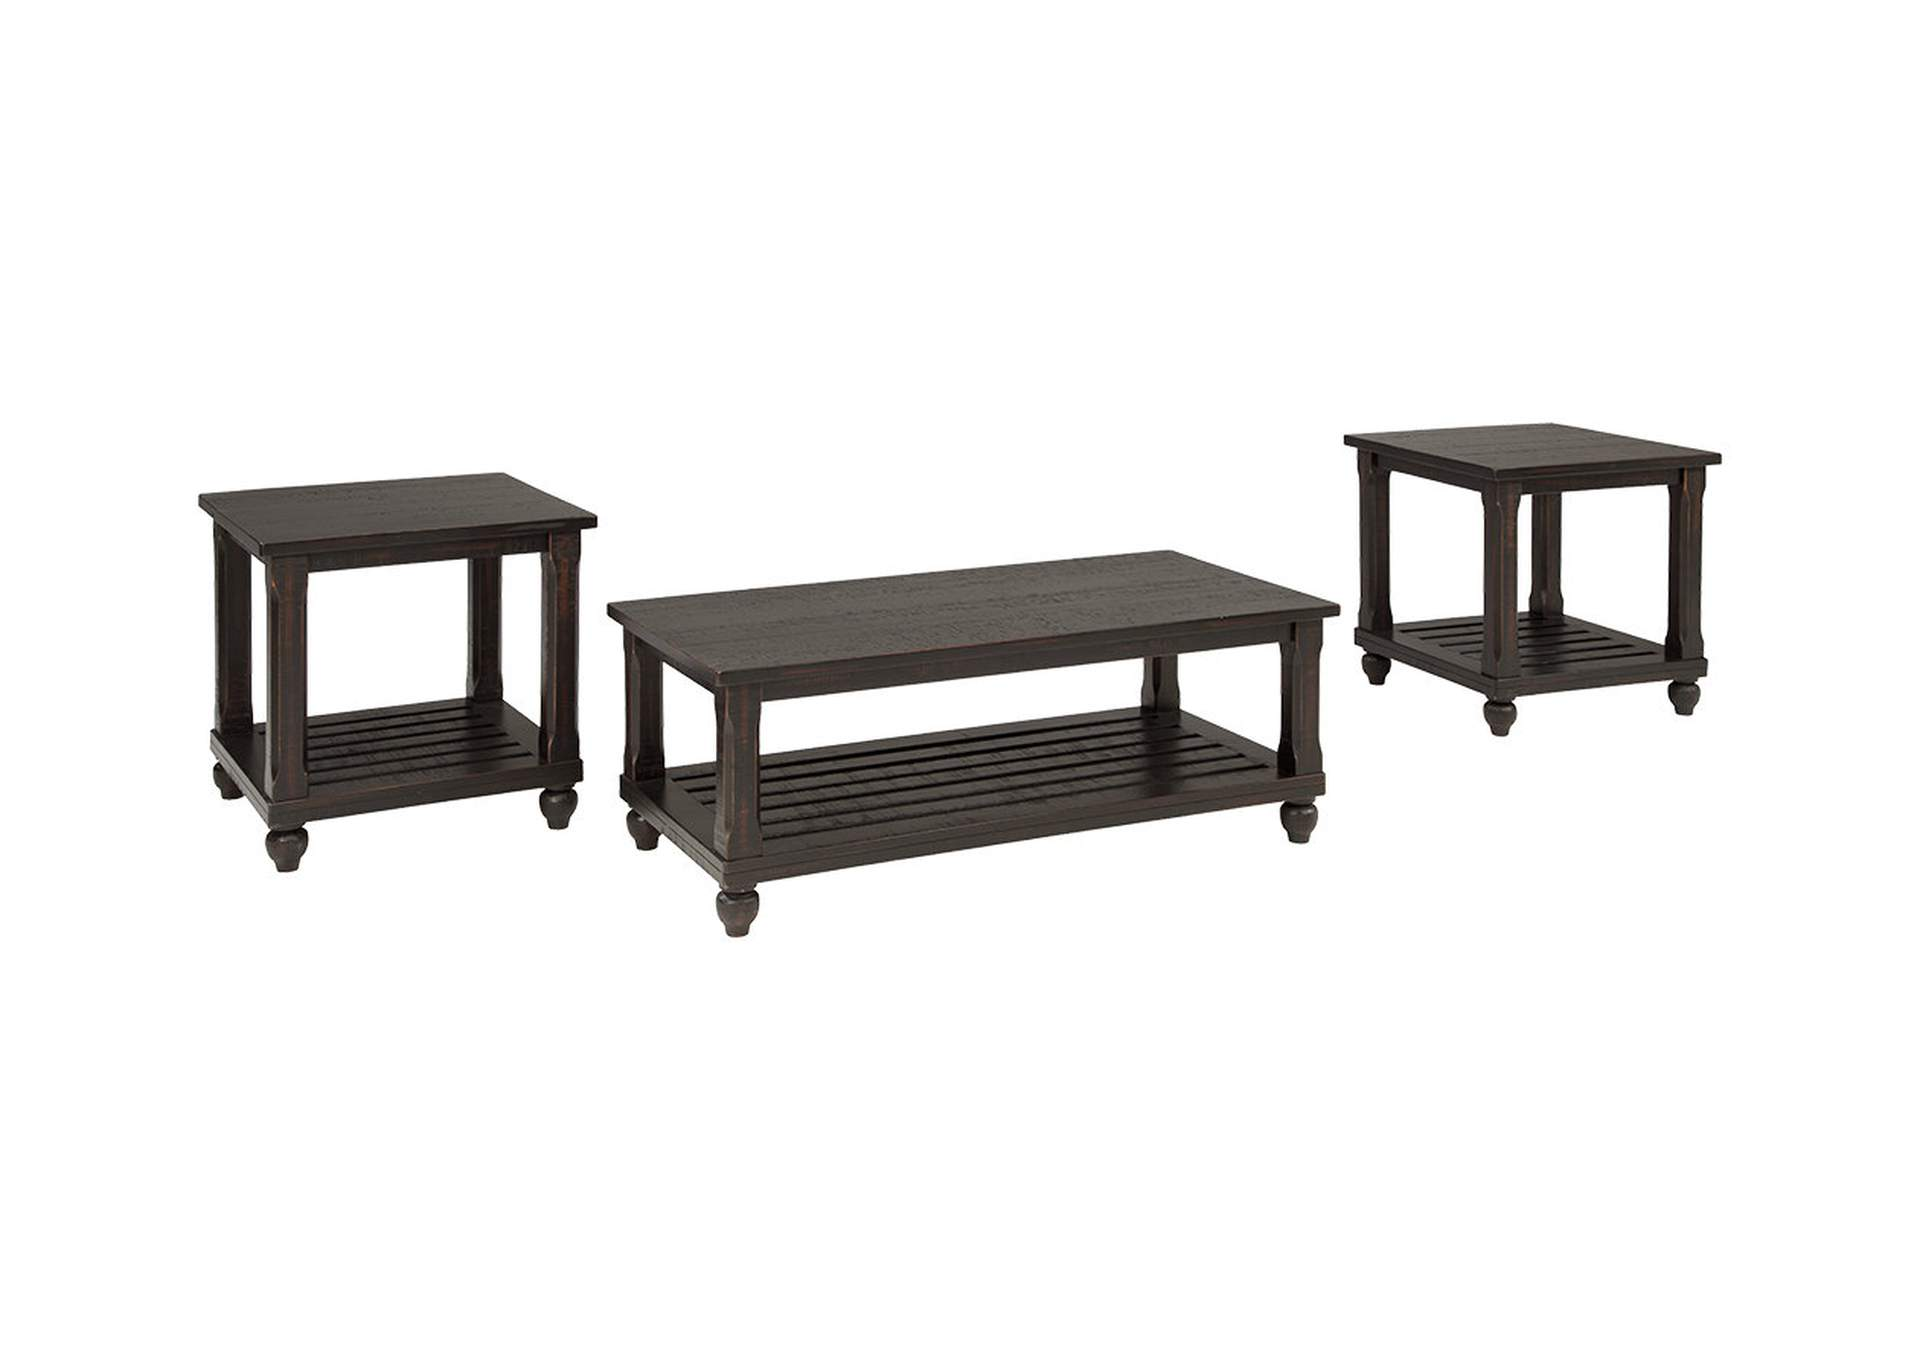 Mallacar Table (Set of 3)